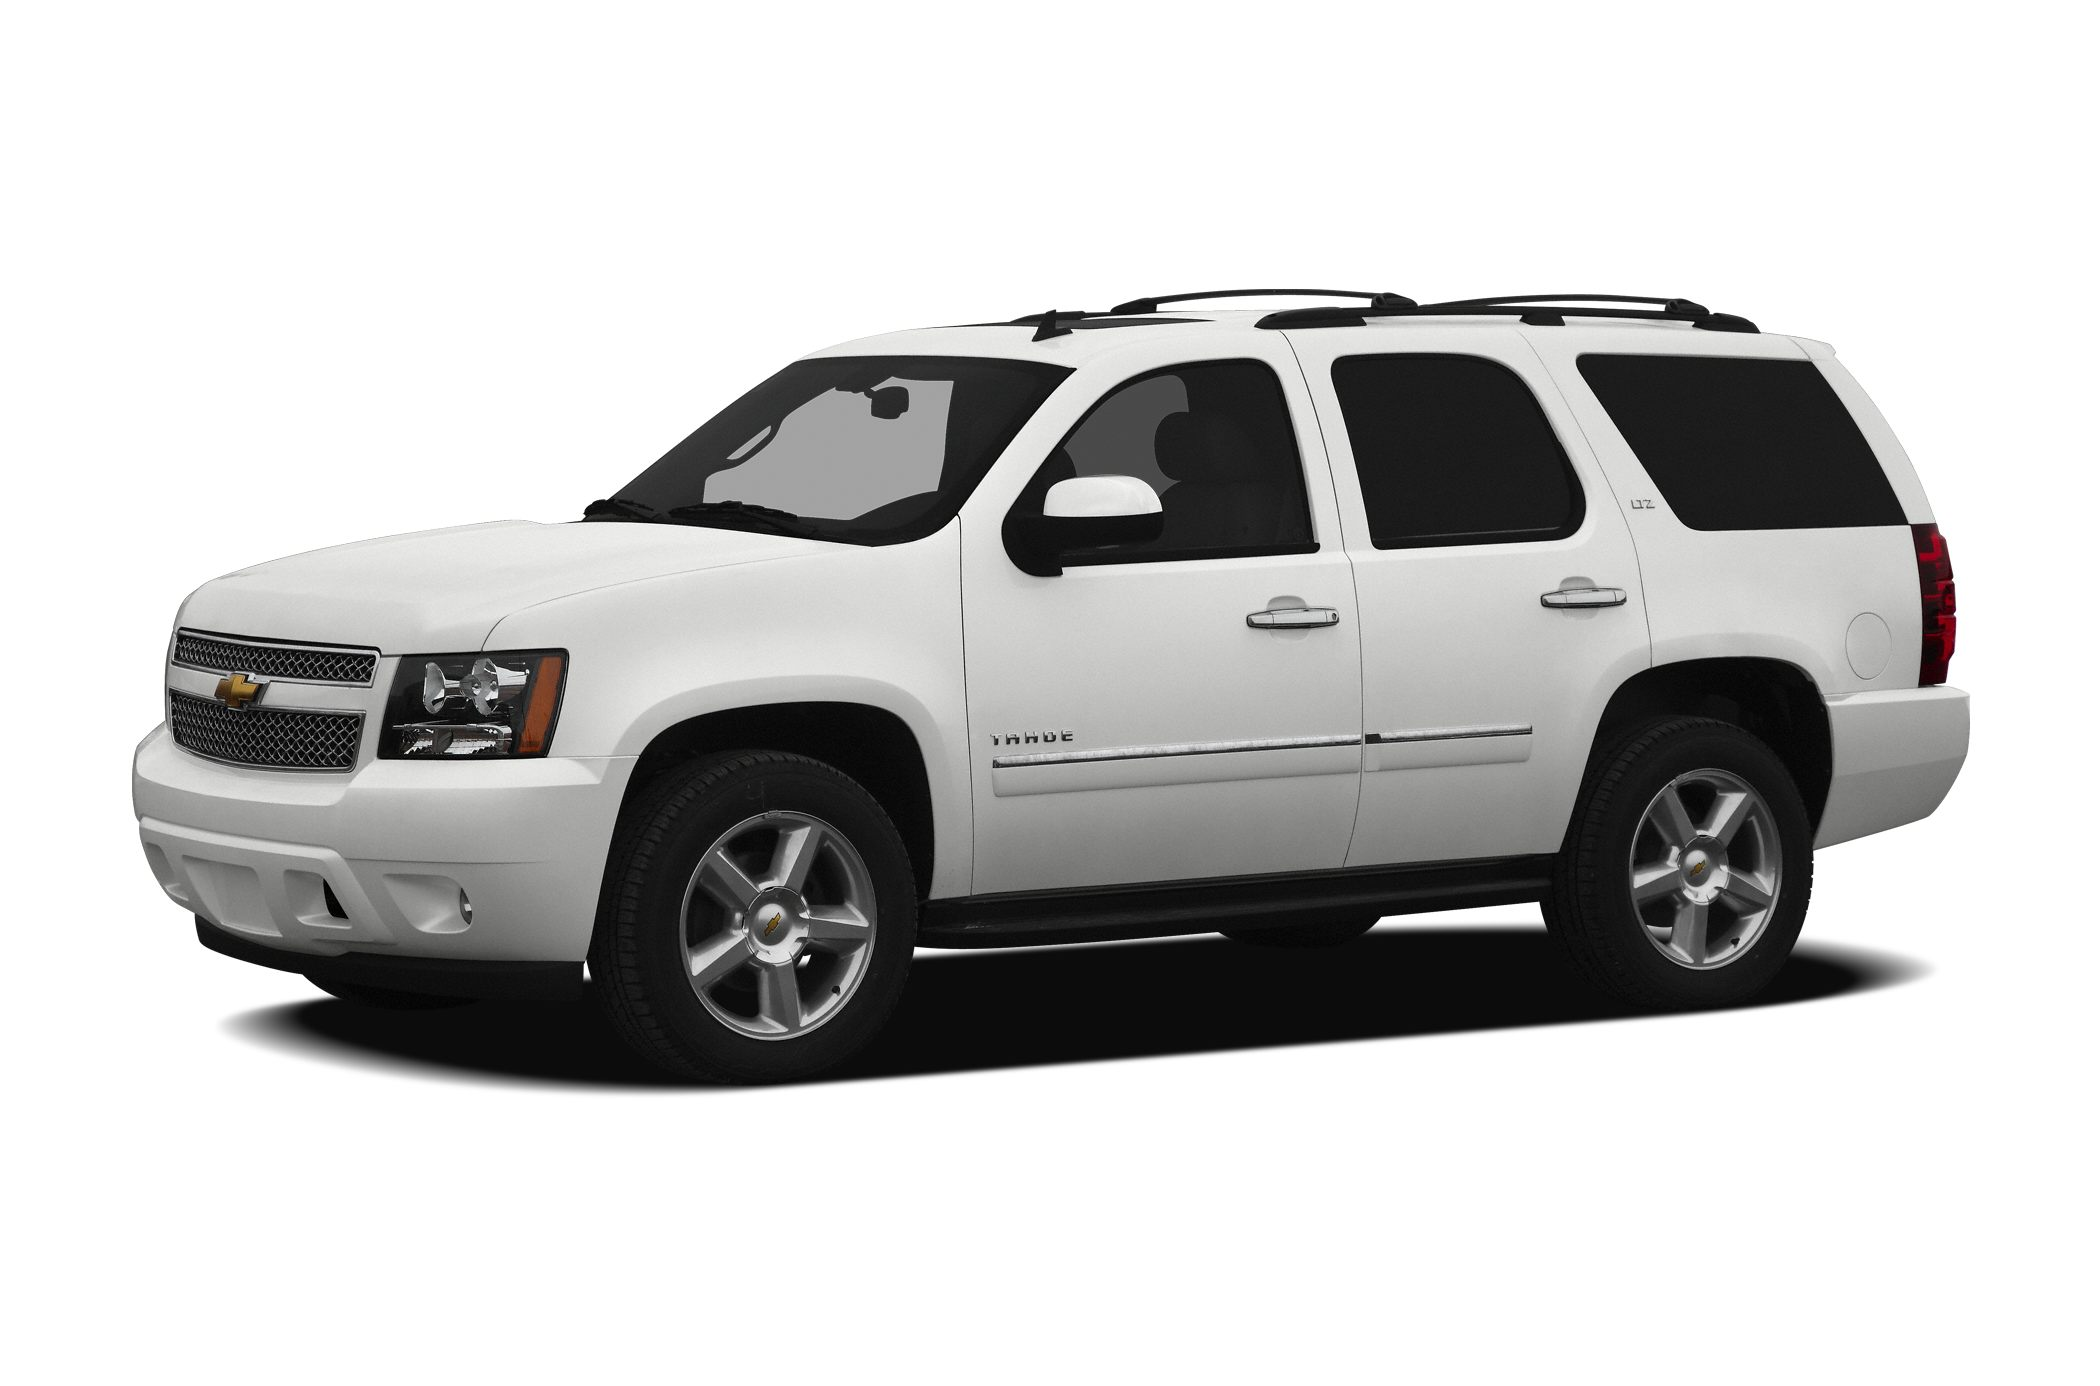 2011 Chevrolet Tahoe LTZ SUV for sale in Santa Rosa for $40,995 with 25,675 miles